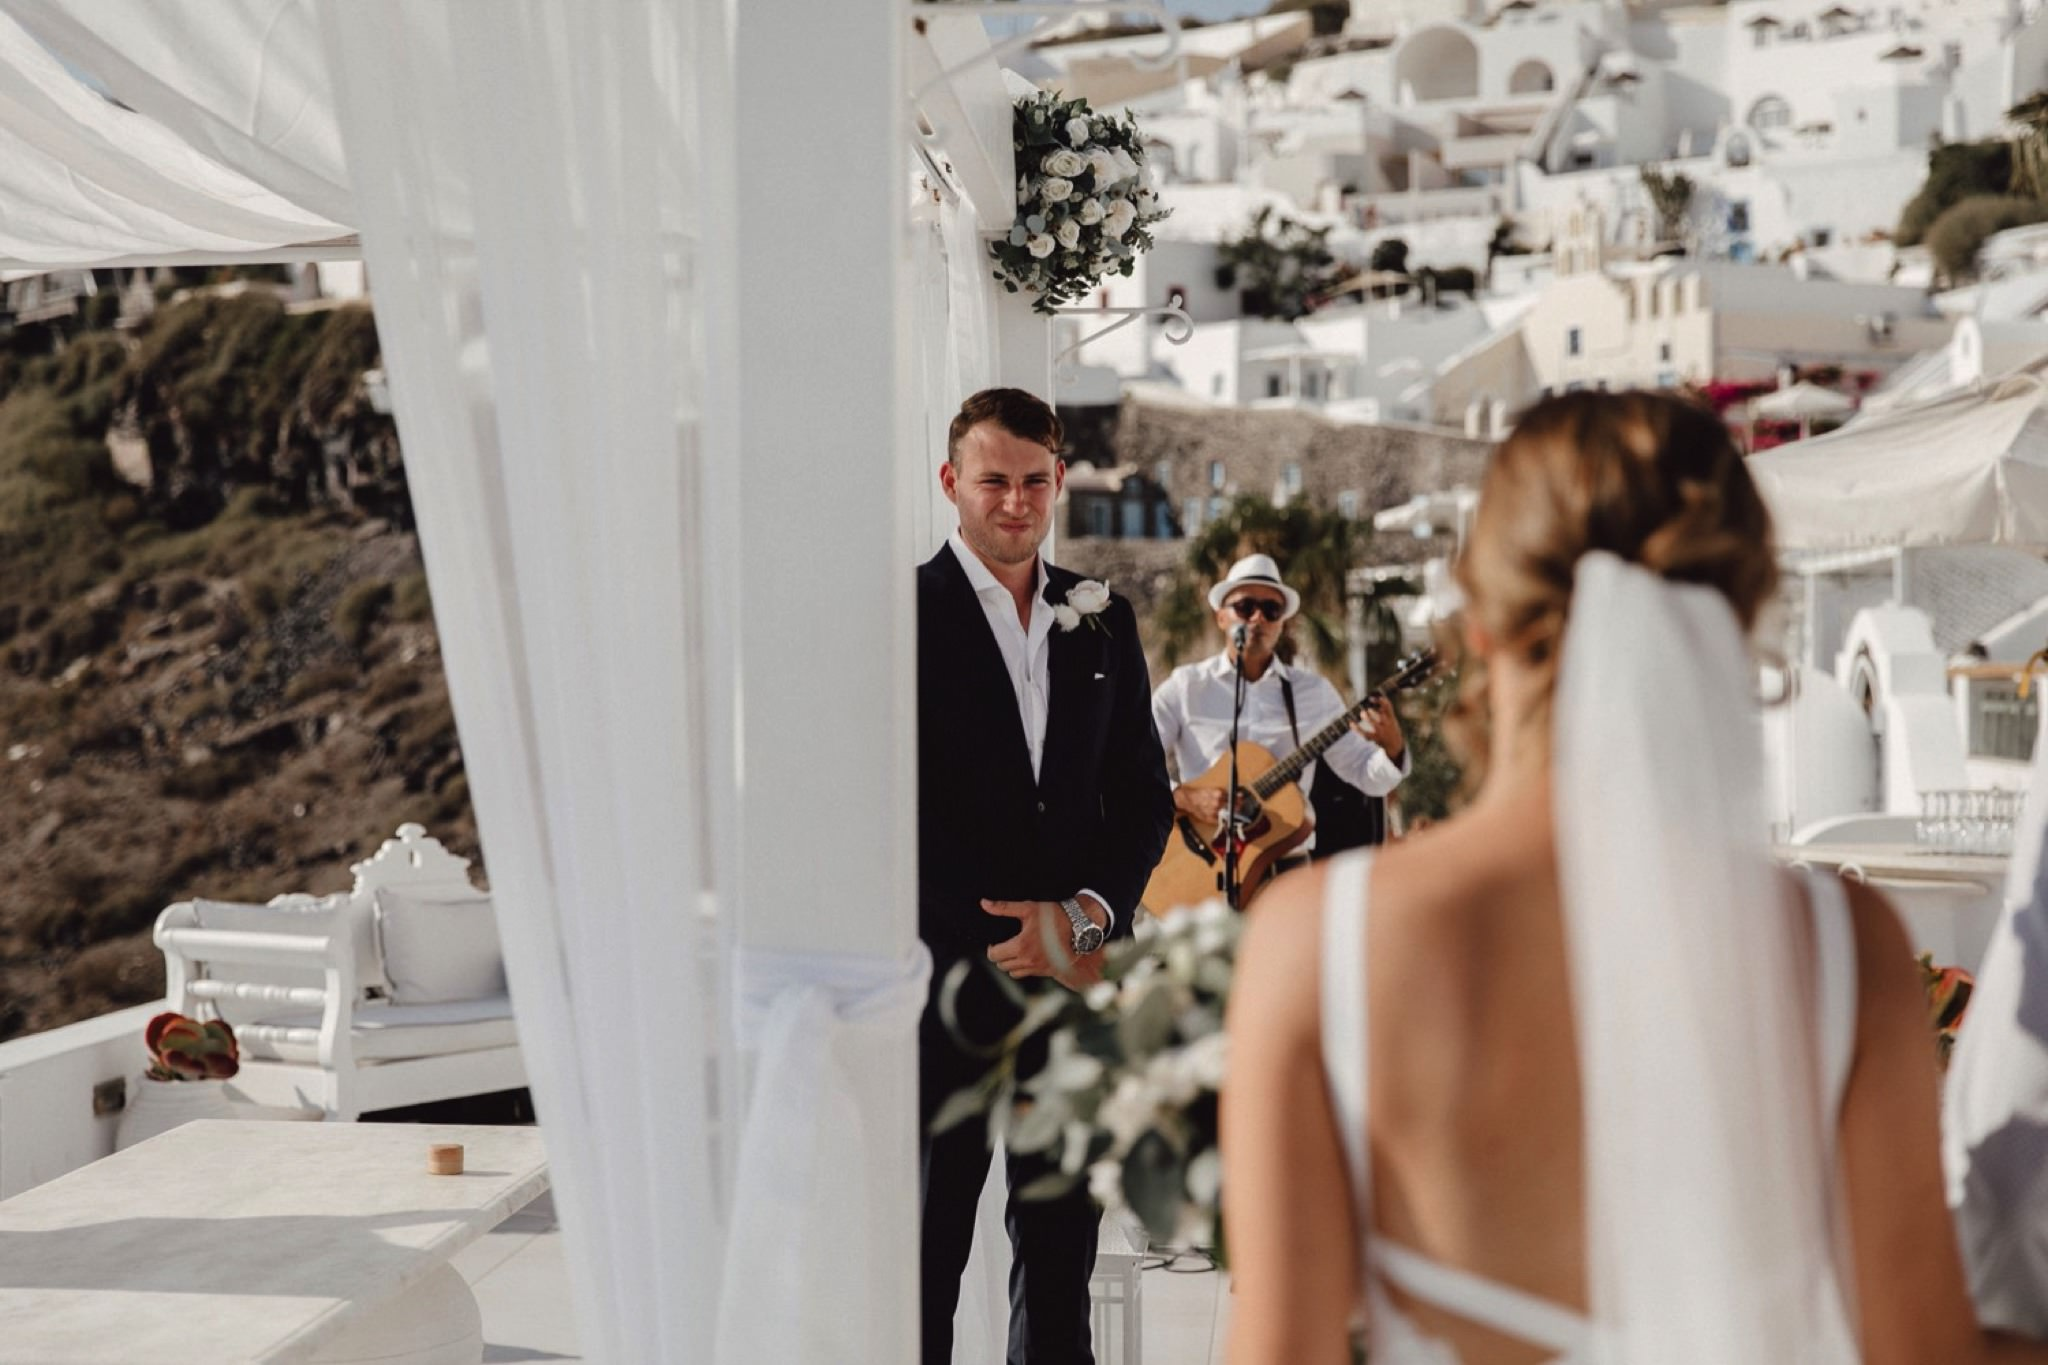 santorini, greece, grace loves lace, dana villas, shae estella photo, sunshine coast, brisbane, gold coast, byron bay, destination, wedding photography, photographer, travel, first look, bride, groom